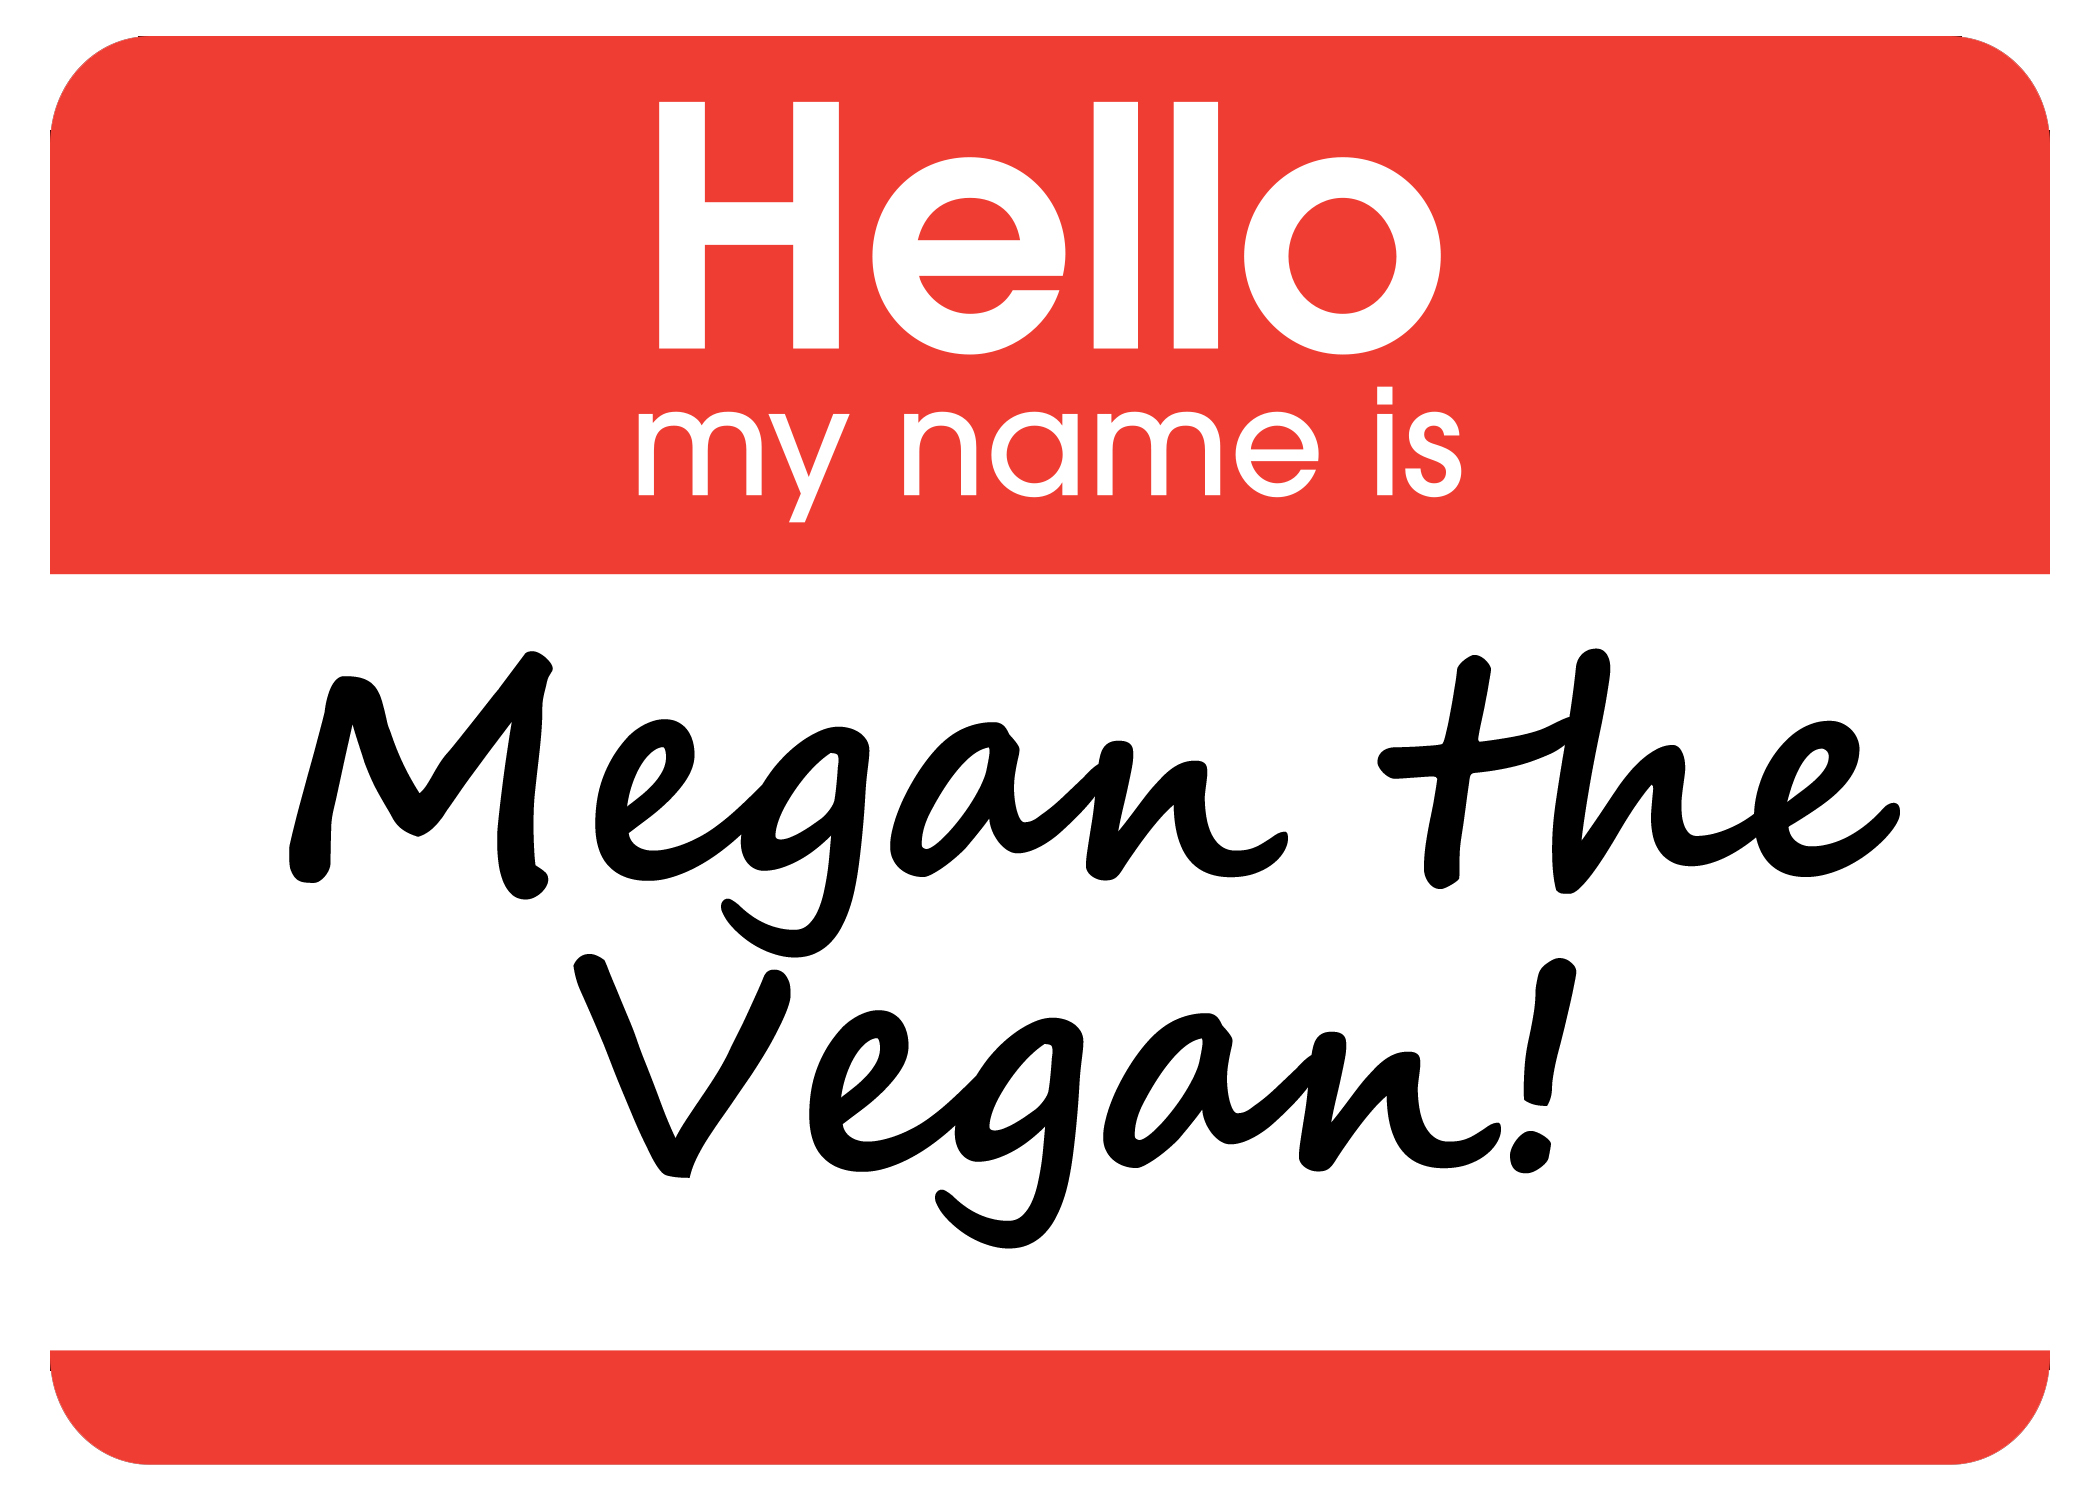 Hello? Is it the vegan you're looking for?